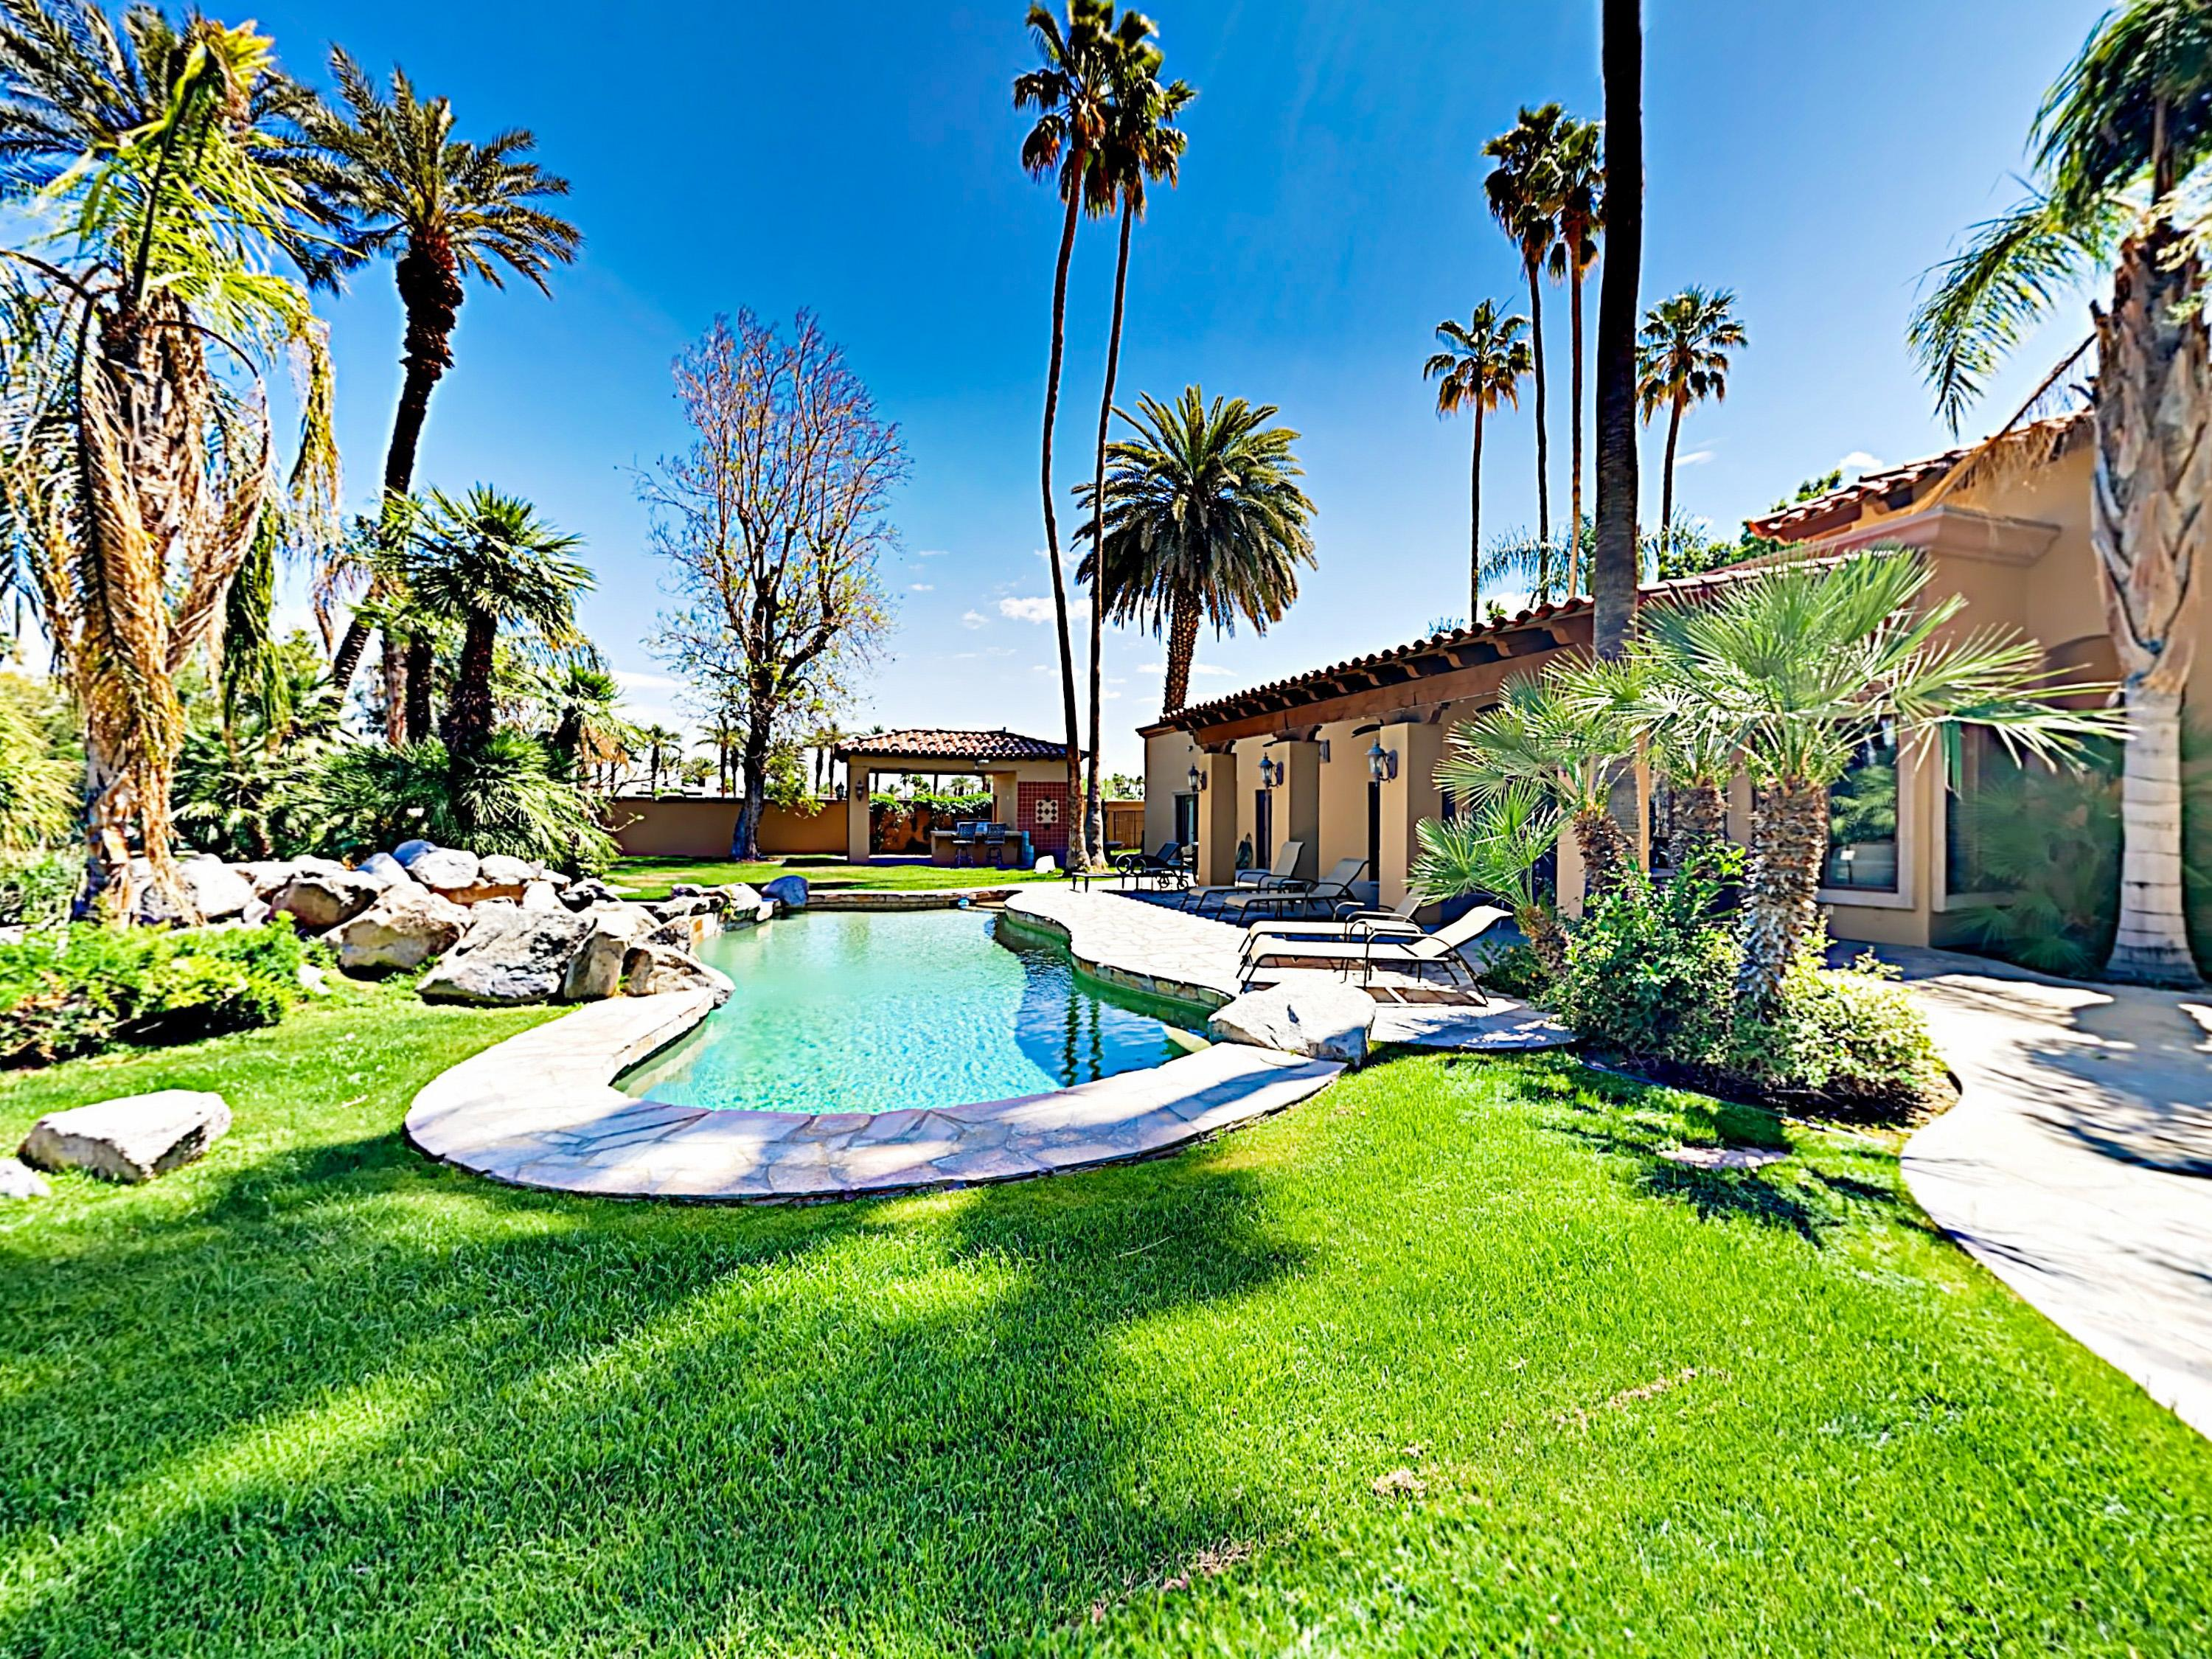 Welcome to Rancho Mirage! This home is professionally managed by TurnKey Vacation Rentals.